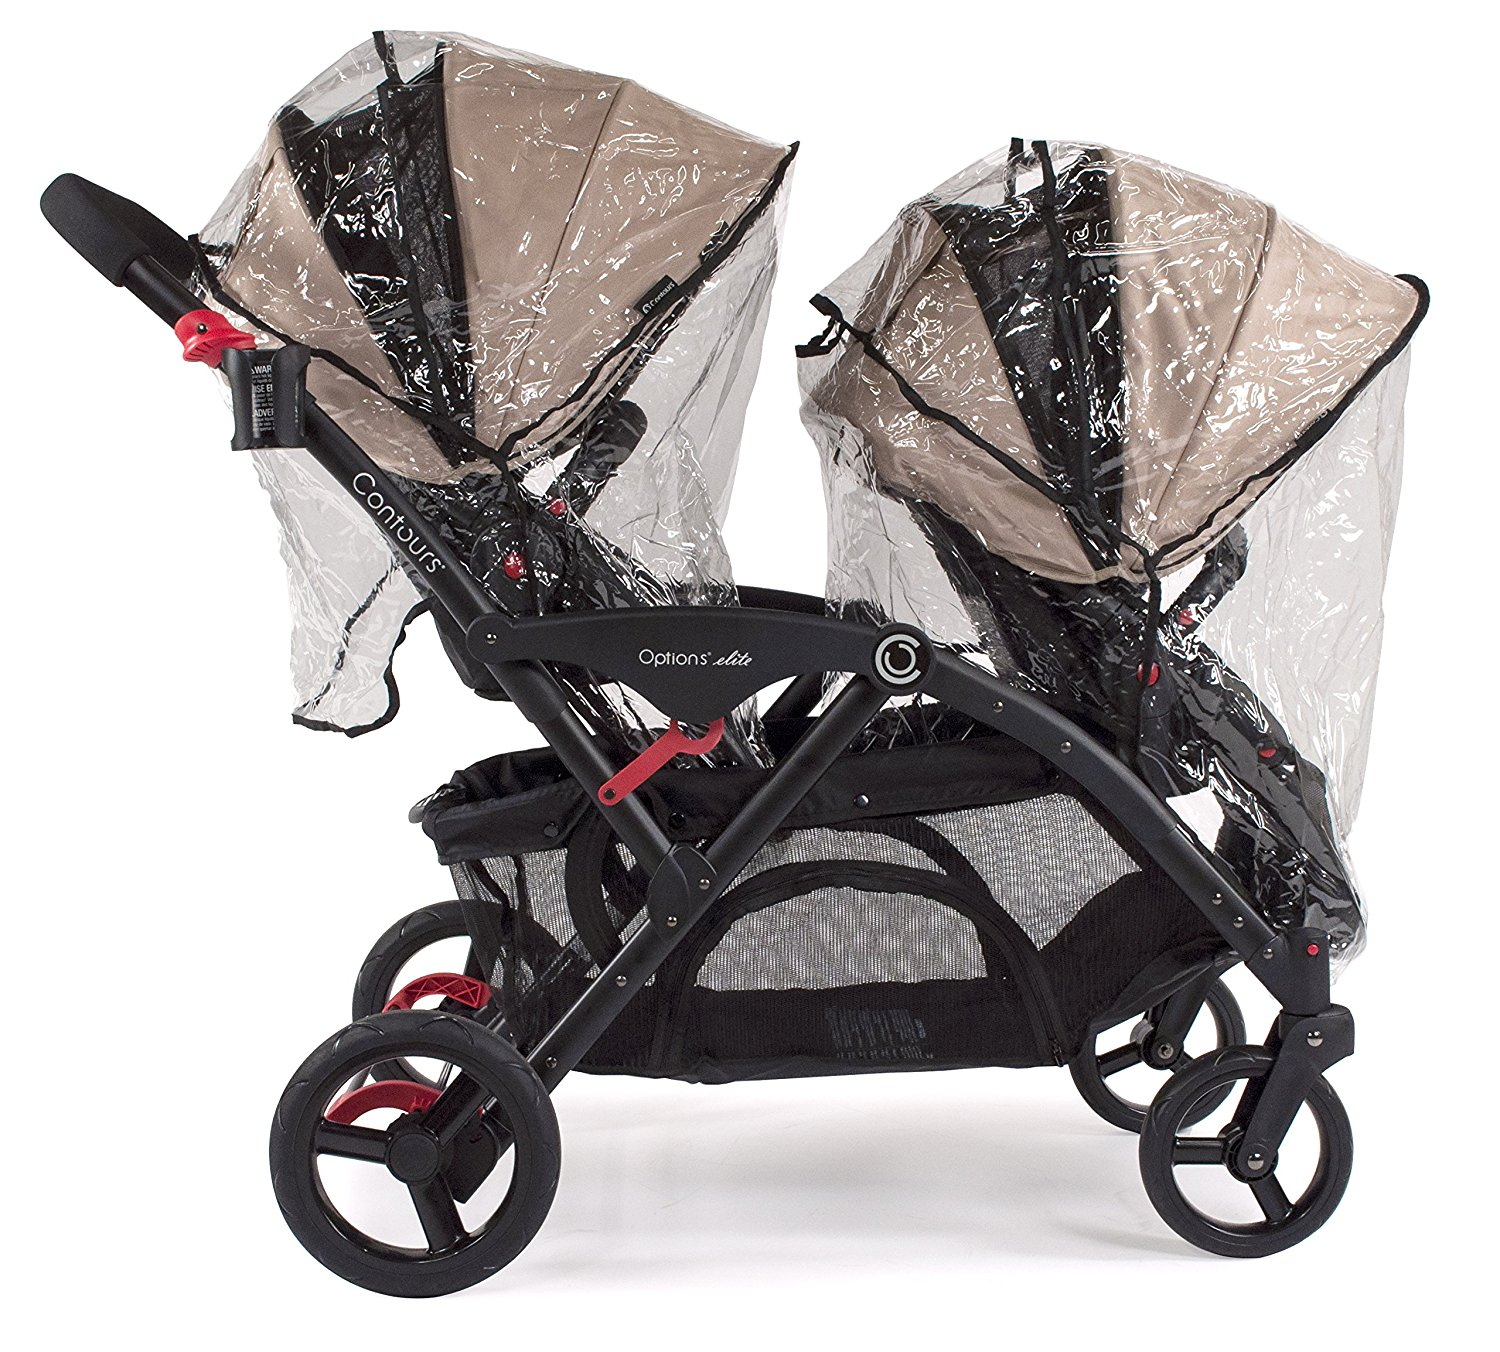 Double Stroller Rain Cover Weather Shield For Single And Double Strollers Compatible With Bliss Options Elite Tandem Options Lt Tandem Options 3 Wheel Options By